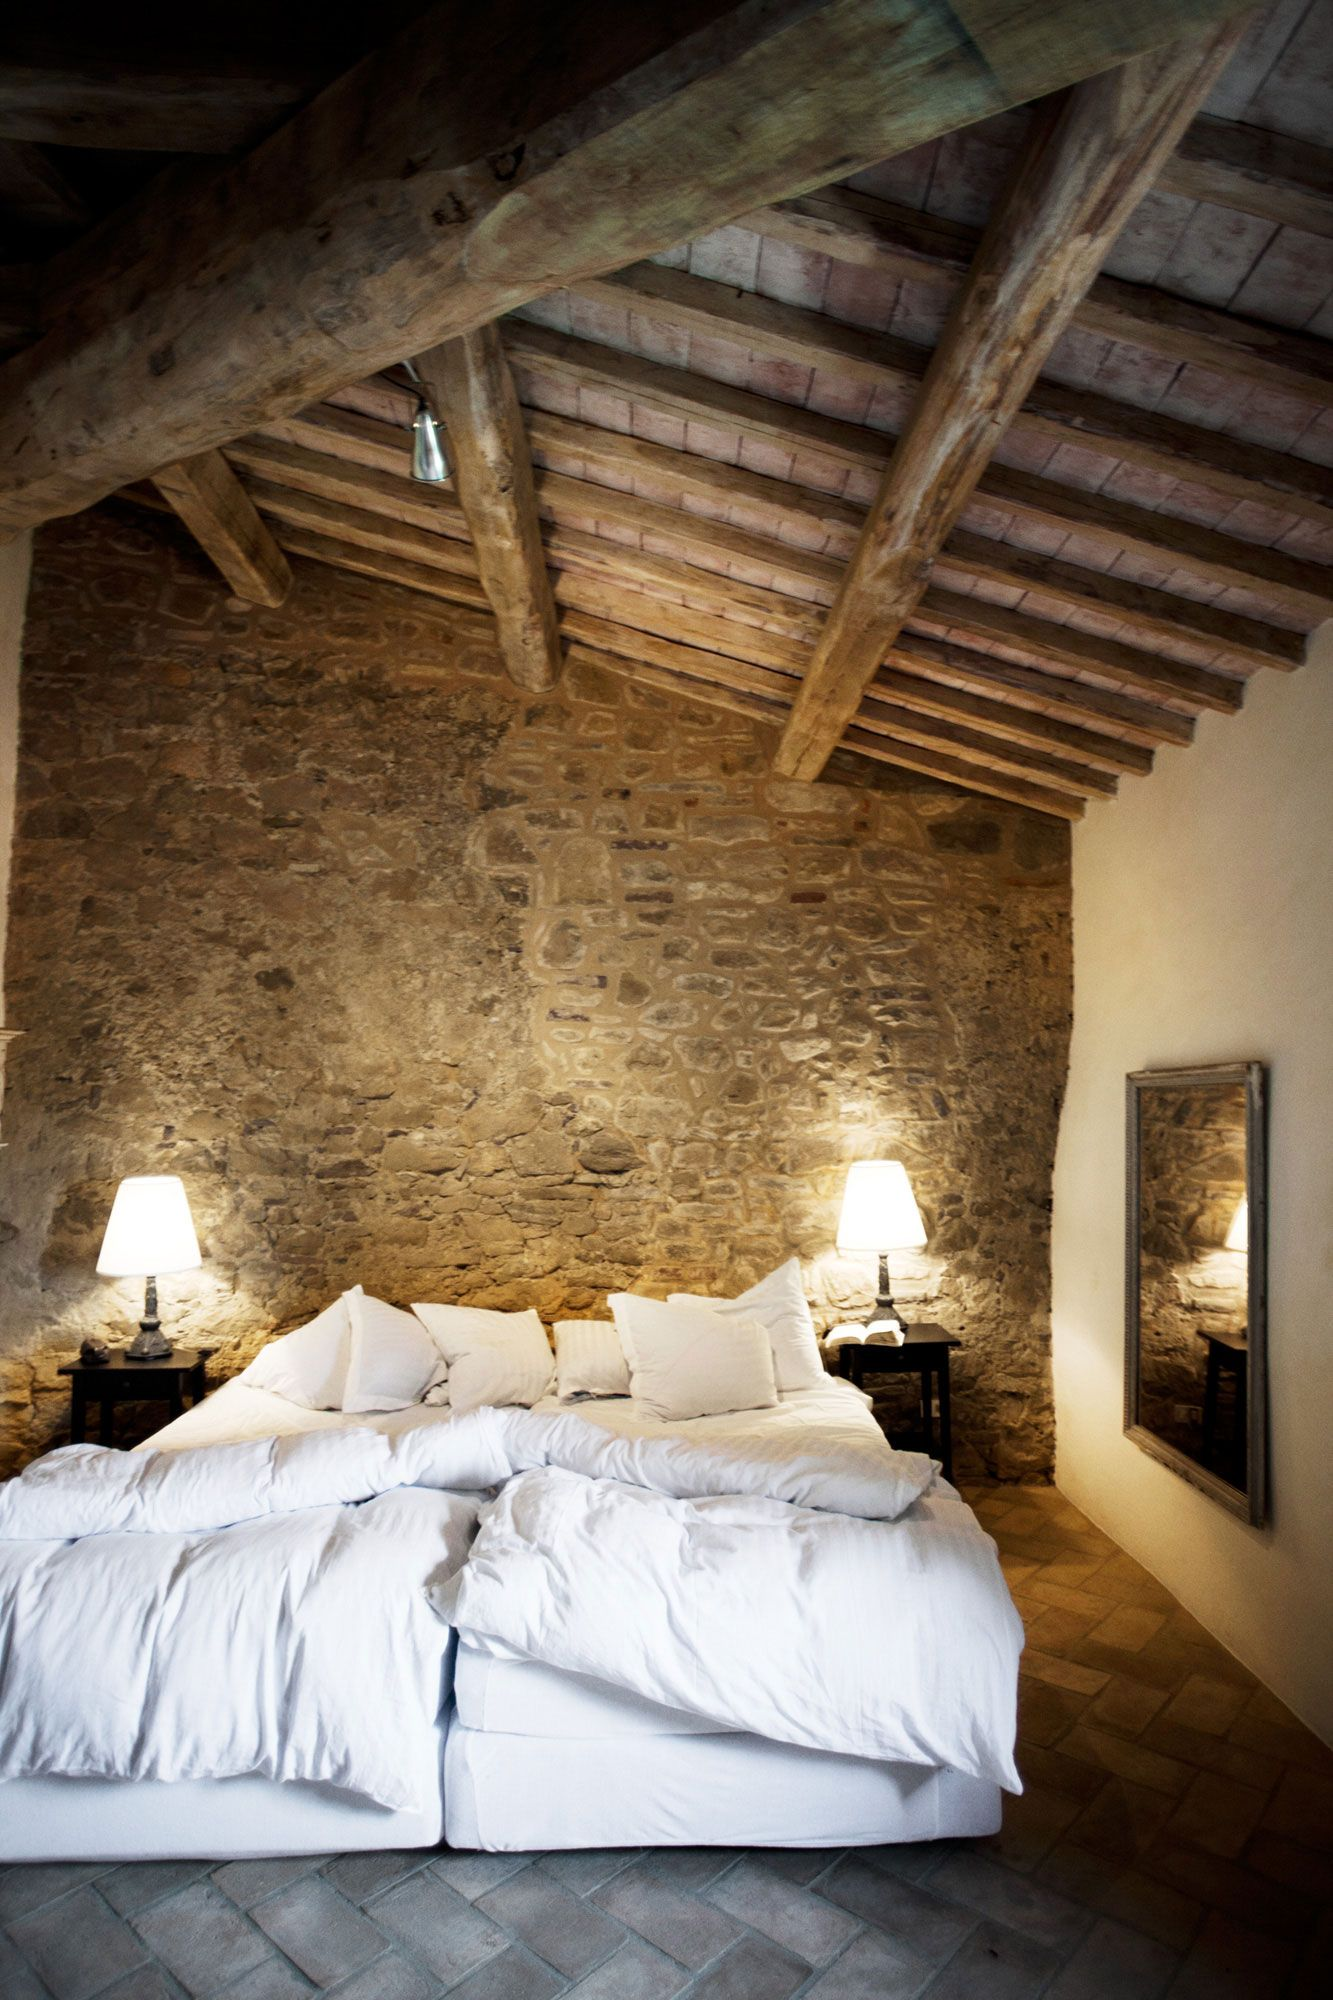 Casa Bramasole, I Love A Whole Rock Wall In A Master Bedroom